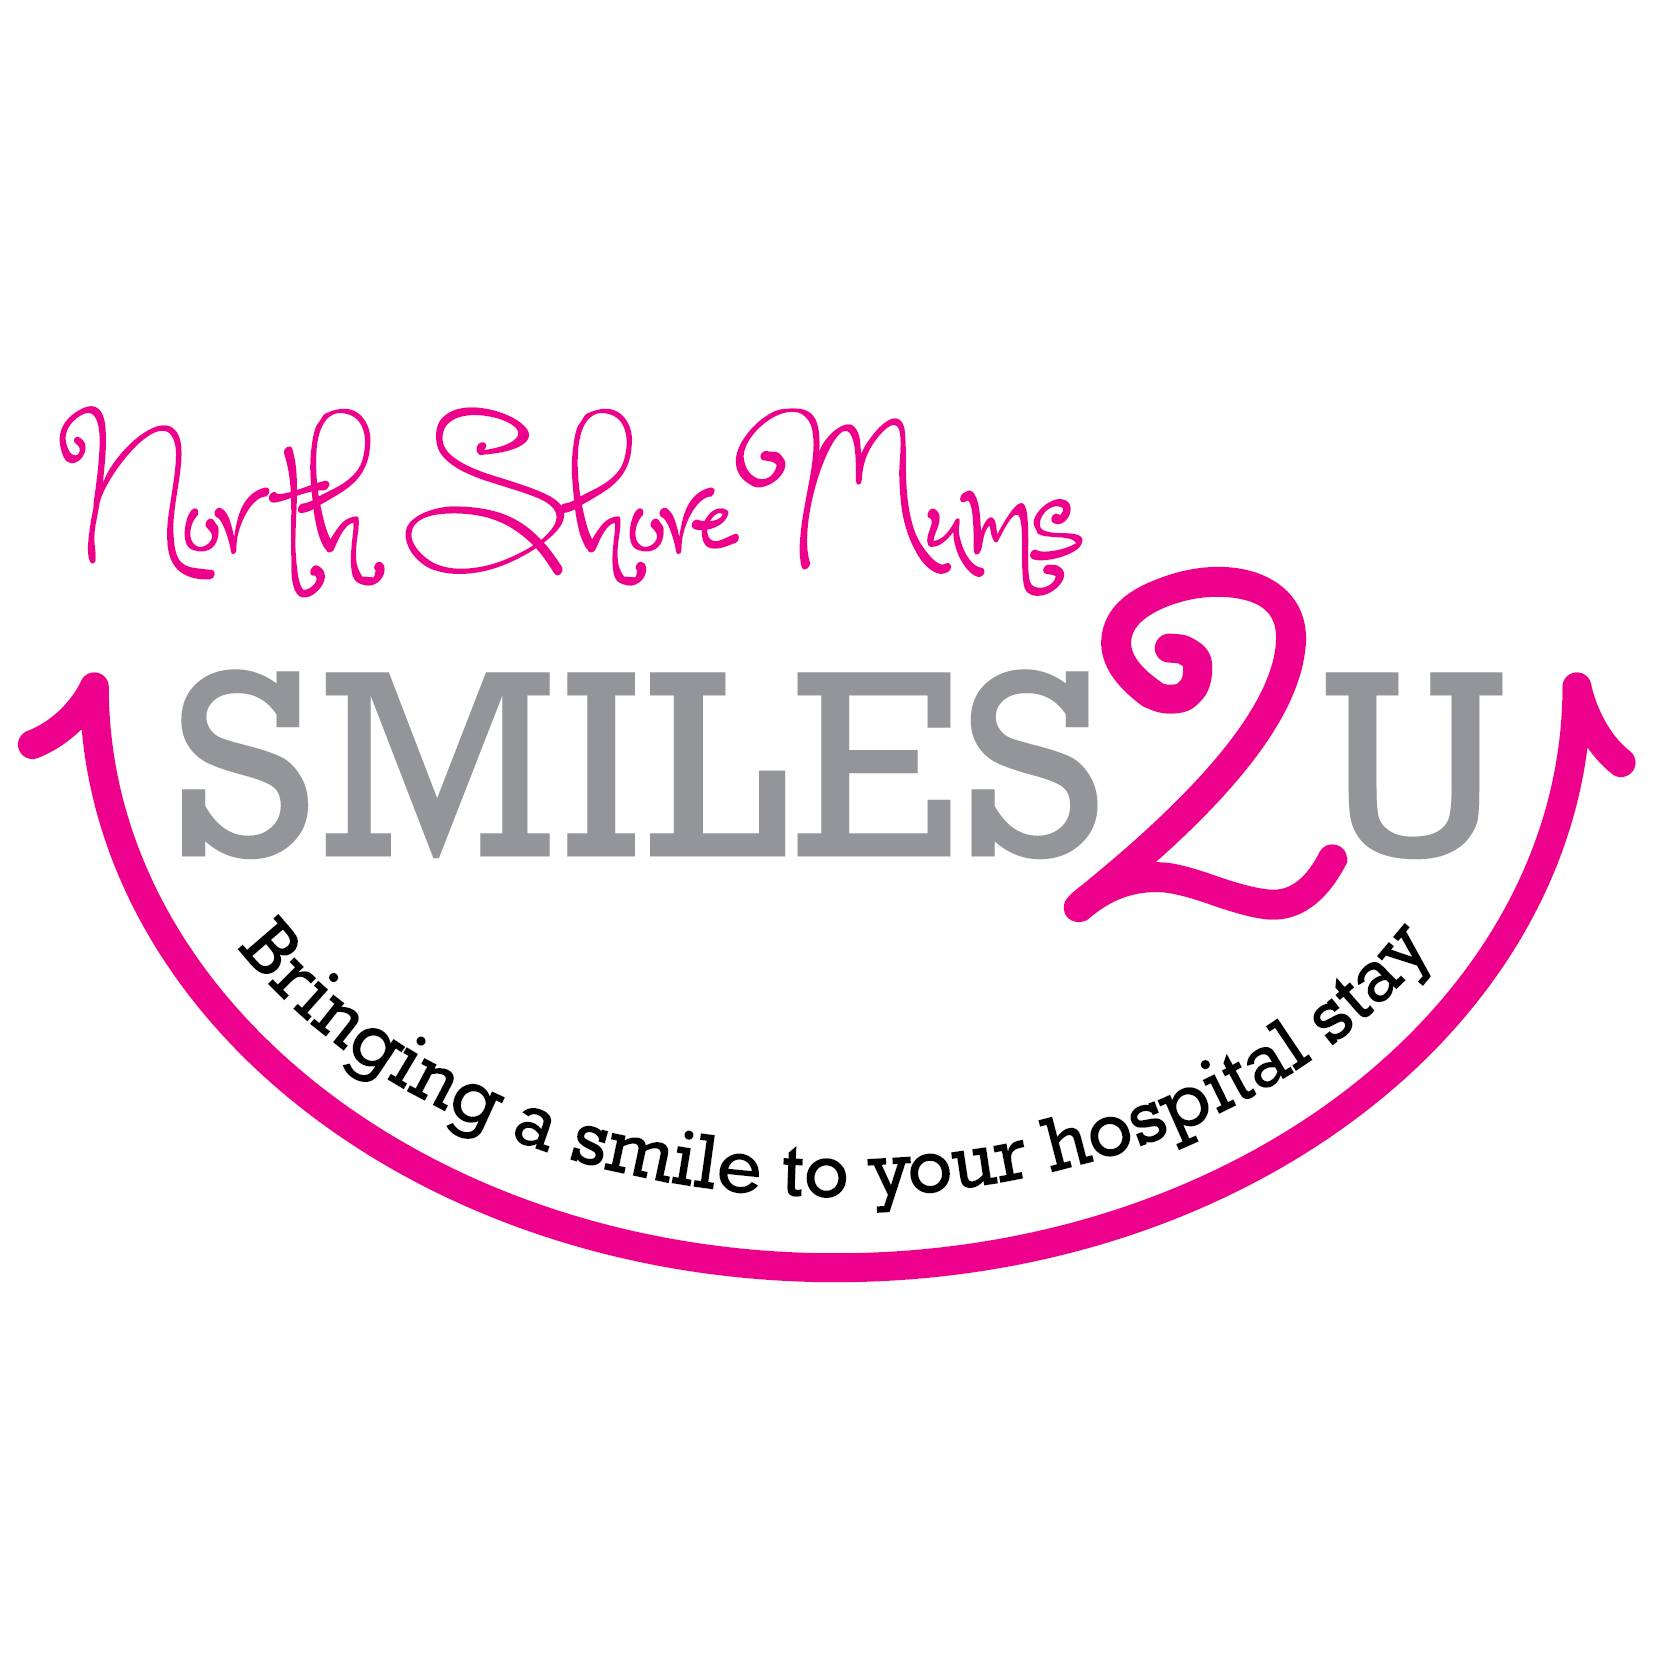 North Shore Mums - Smiles 2U